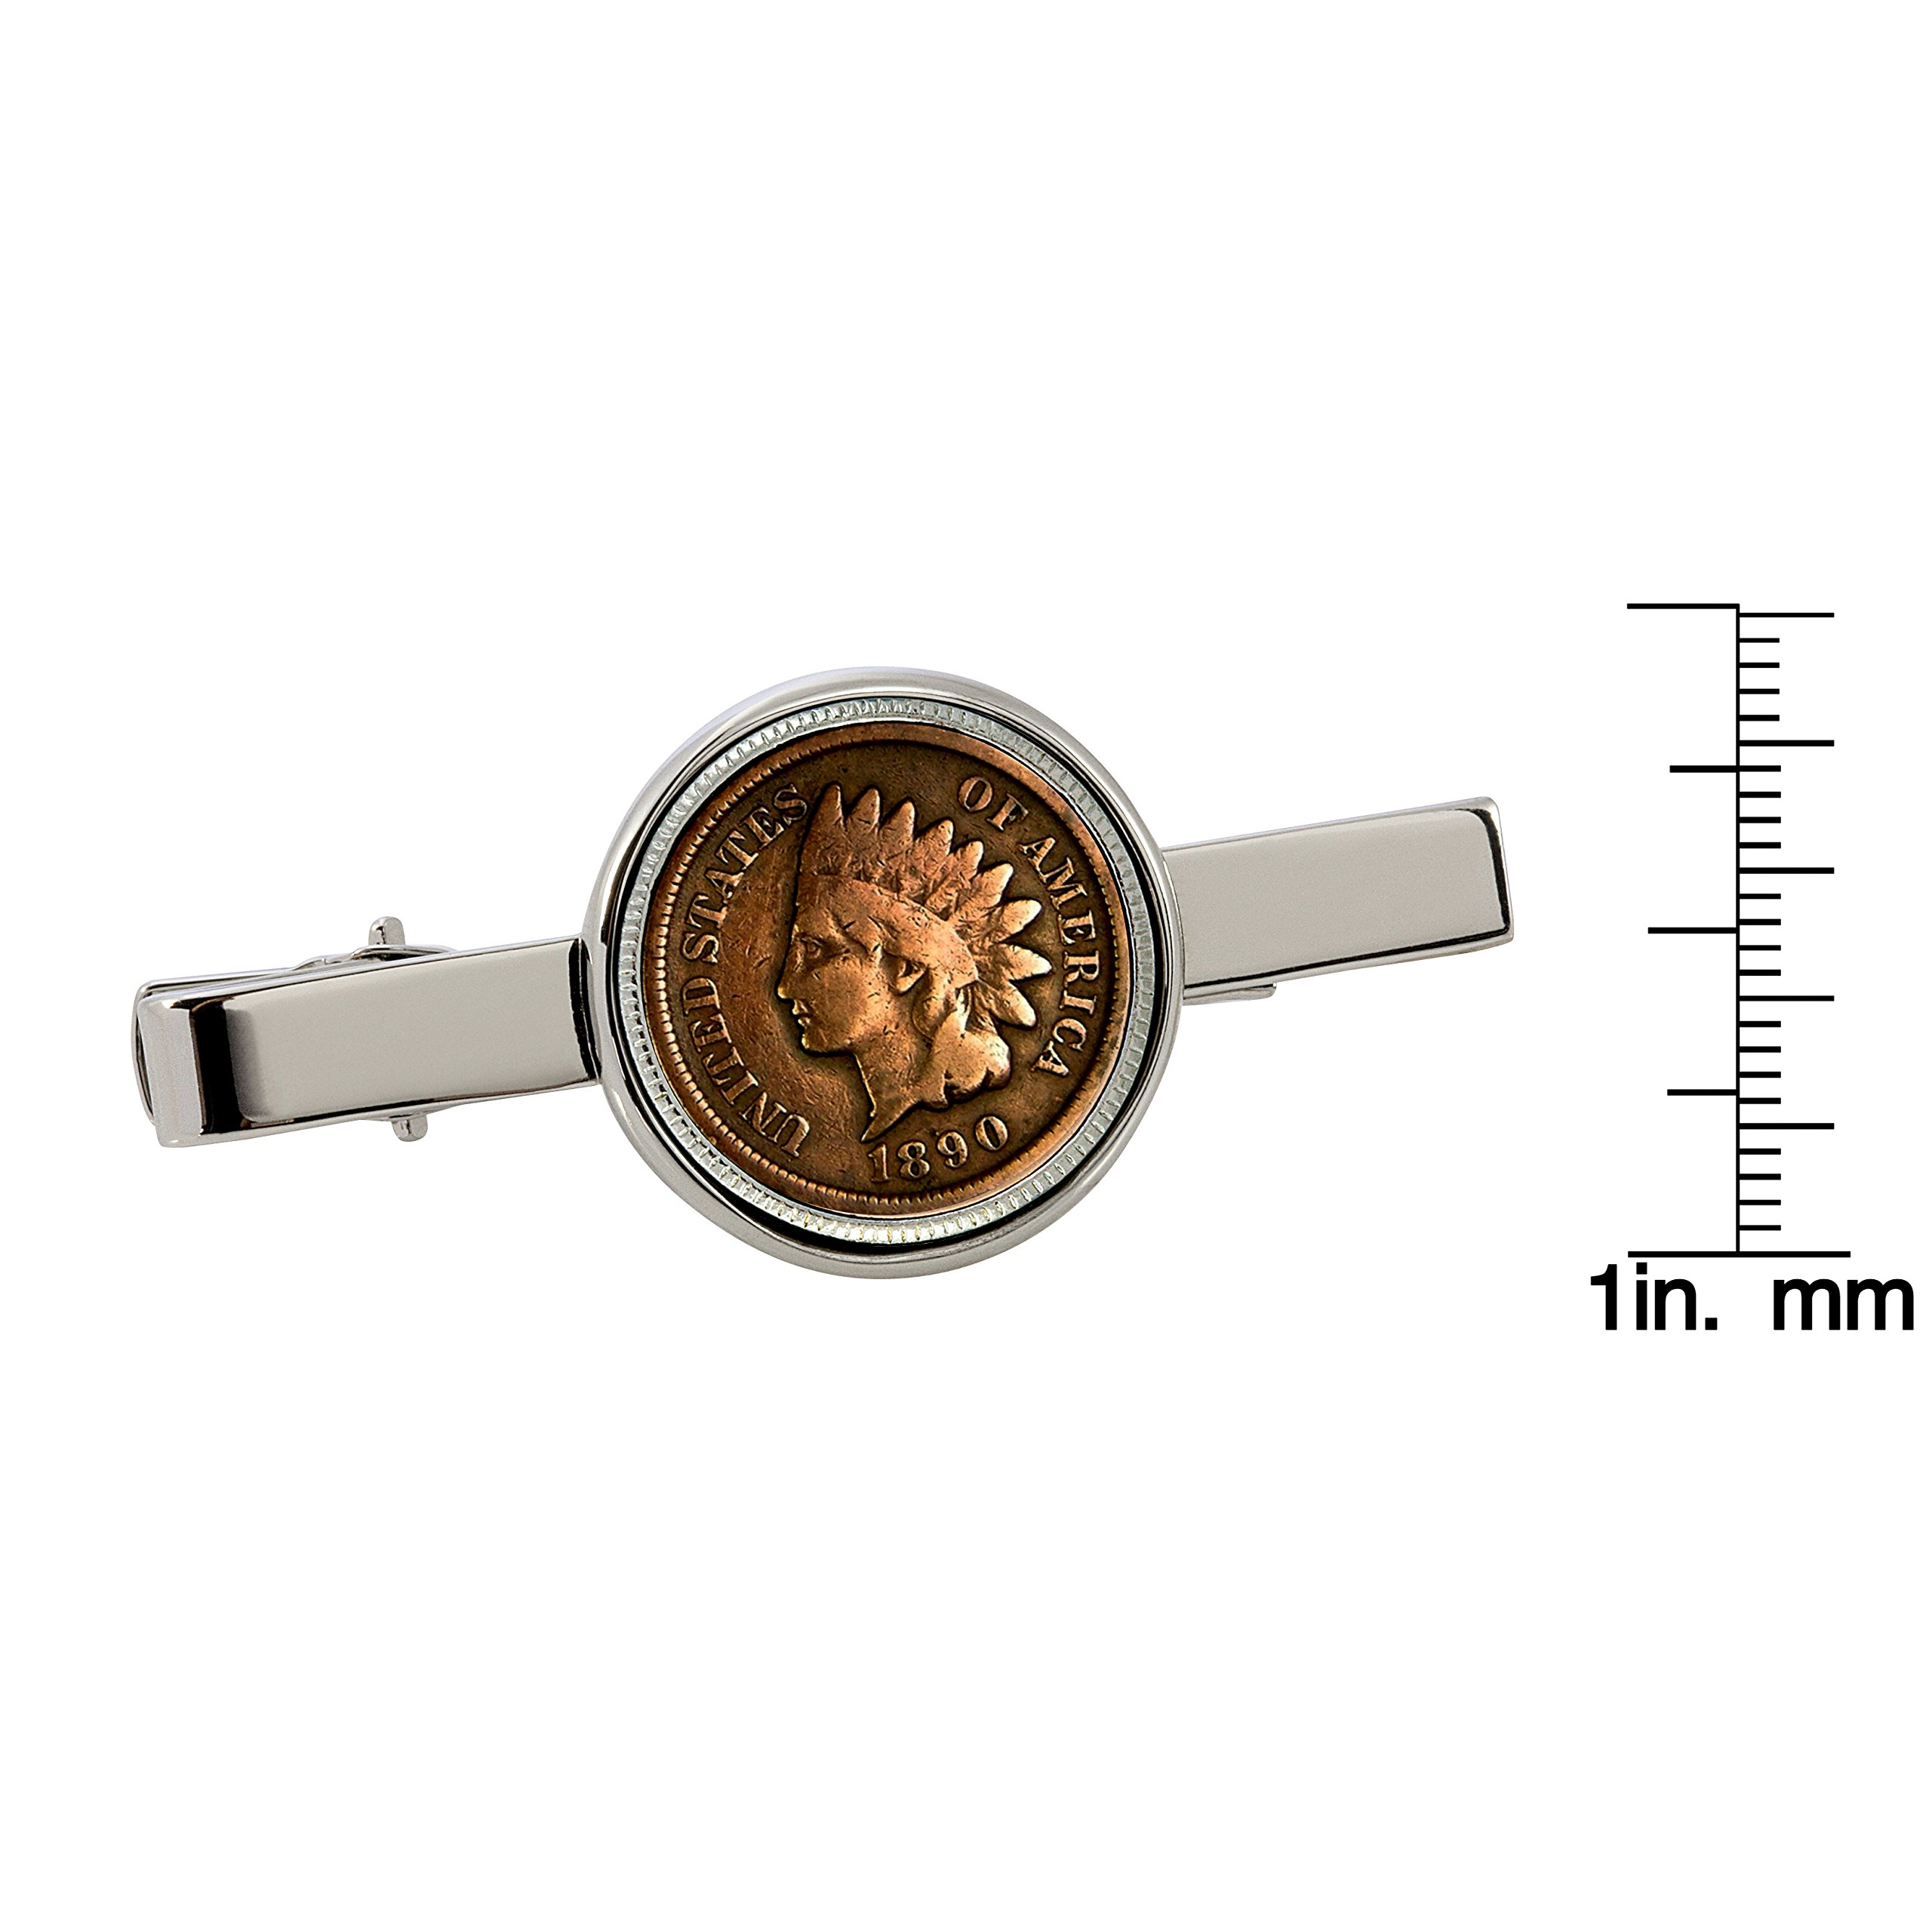 American Coin Treasures 1800's Indian Penny Silvertone Coin Tie Clip by American Coin Treasures (Image #3)